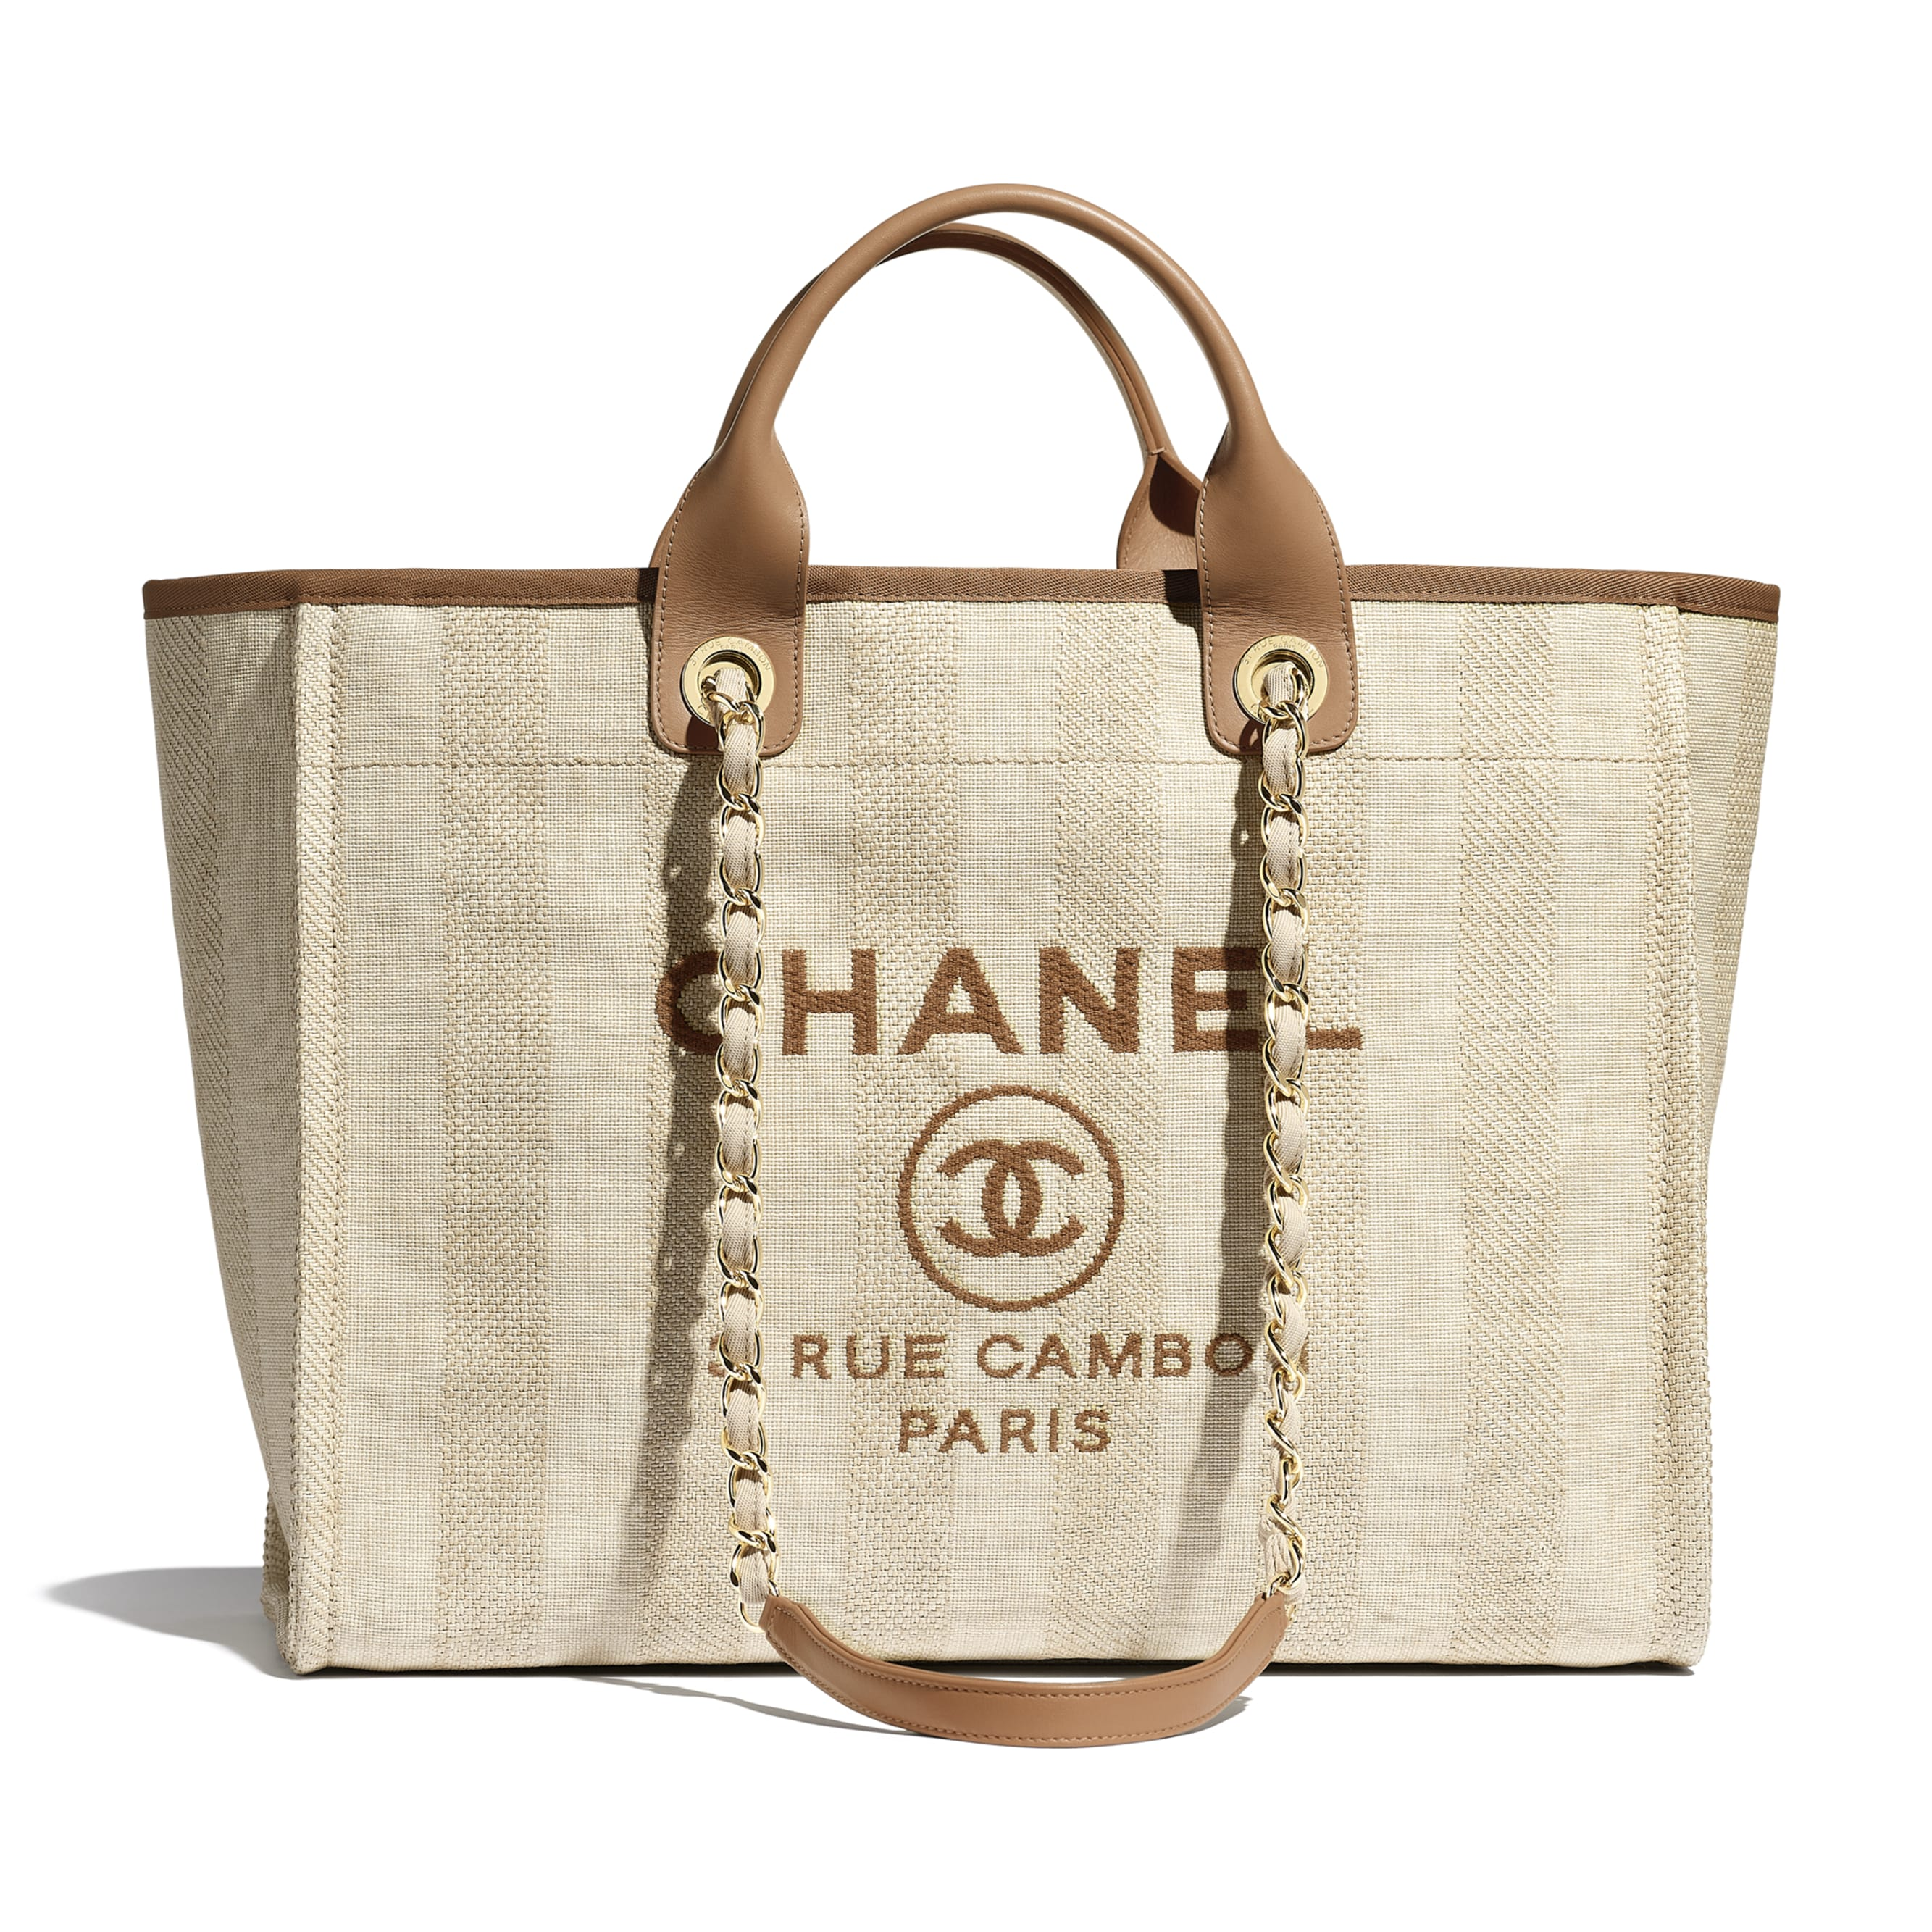 Large Tote - Beige - Mixed Fibres, Calfskin & Gold-Tone Metal - CHANEL - Default view - see standard sized version